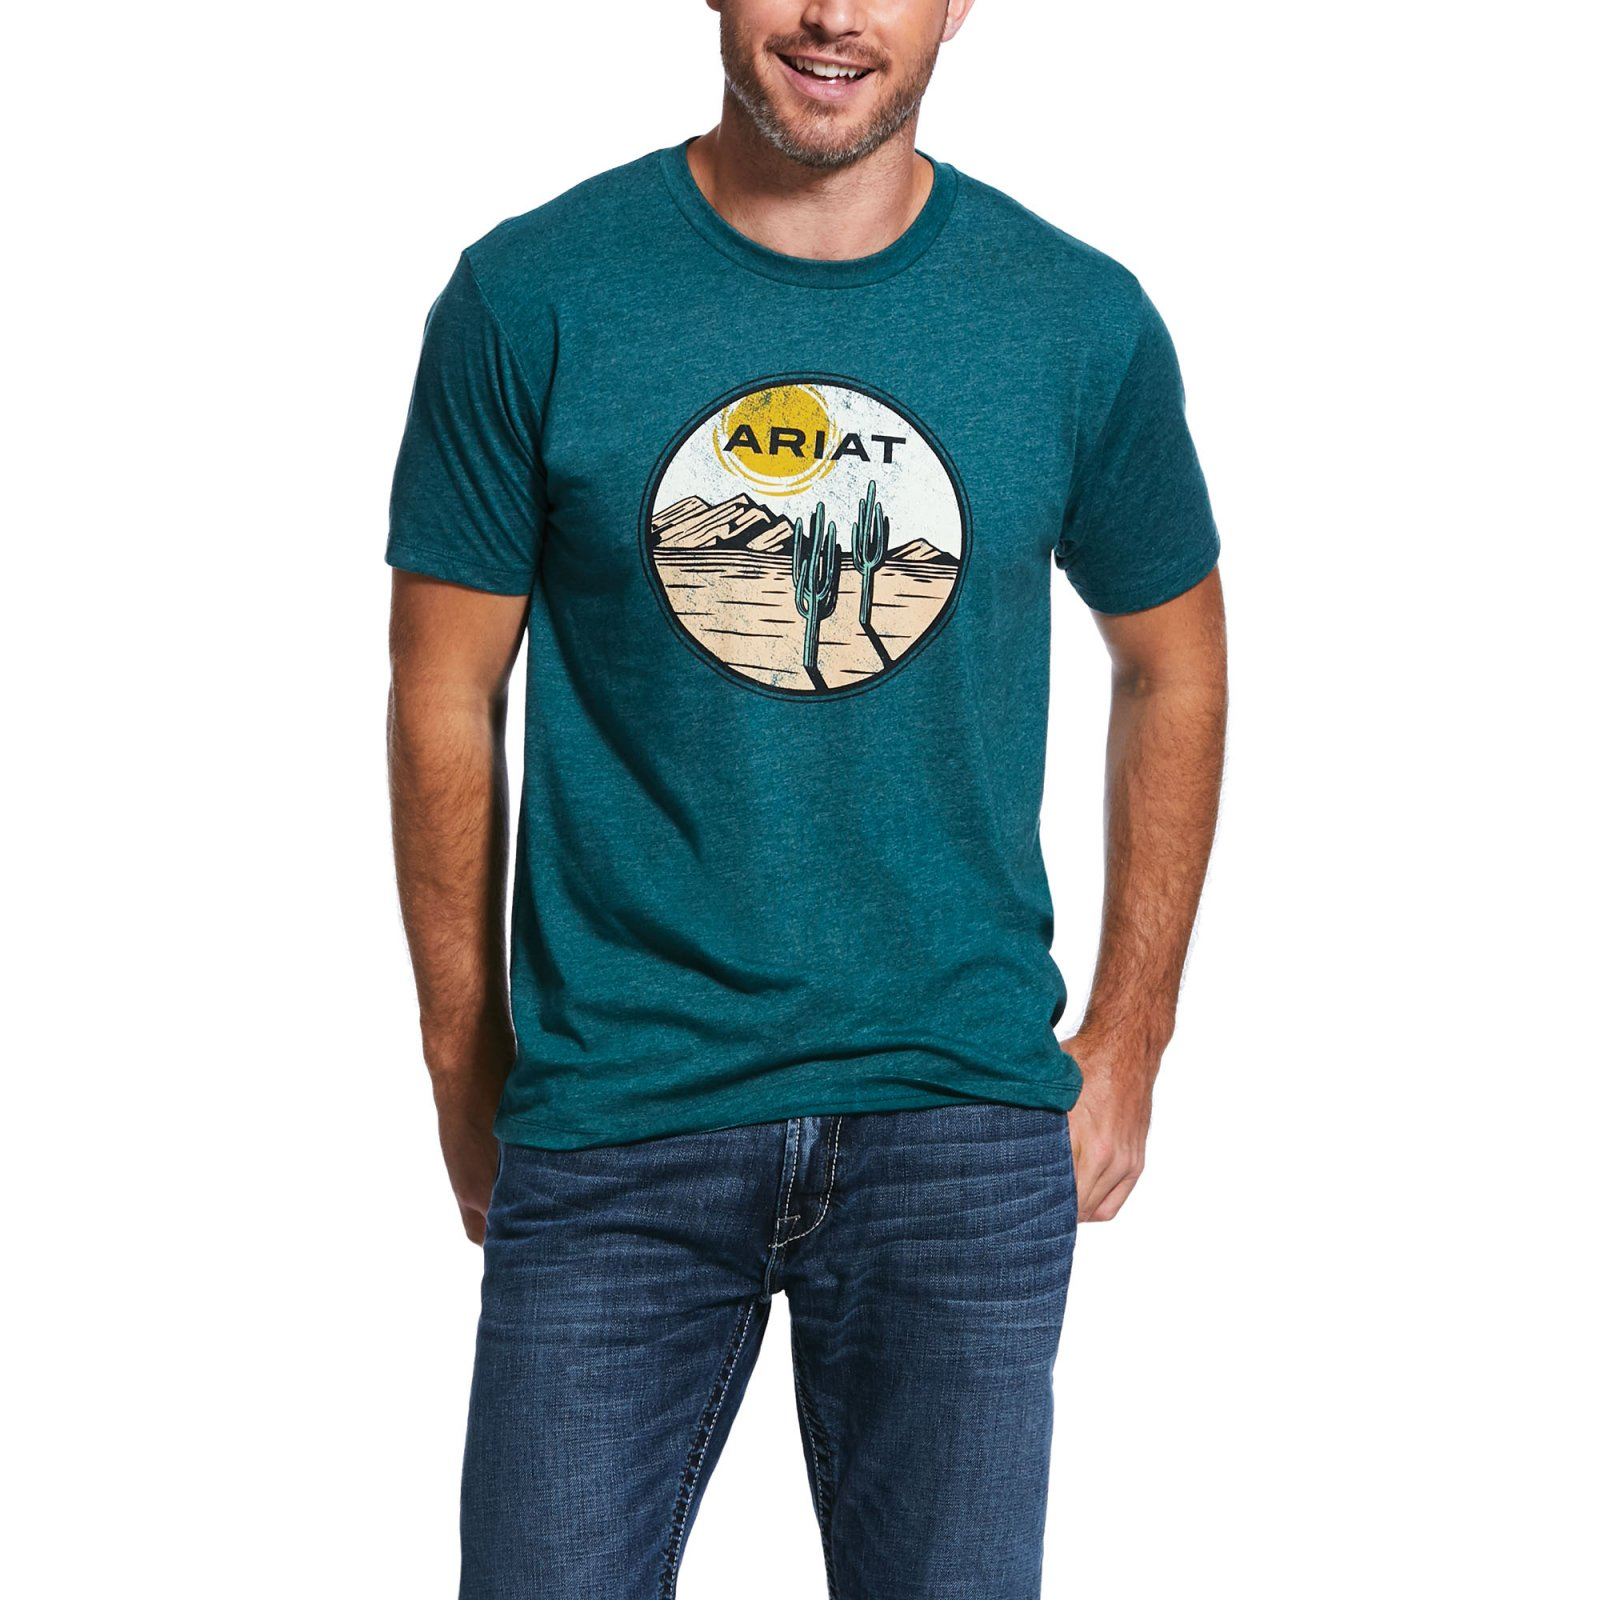 Mirage Tee from Ariat